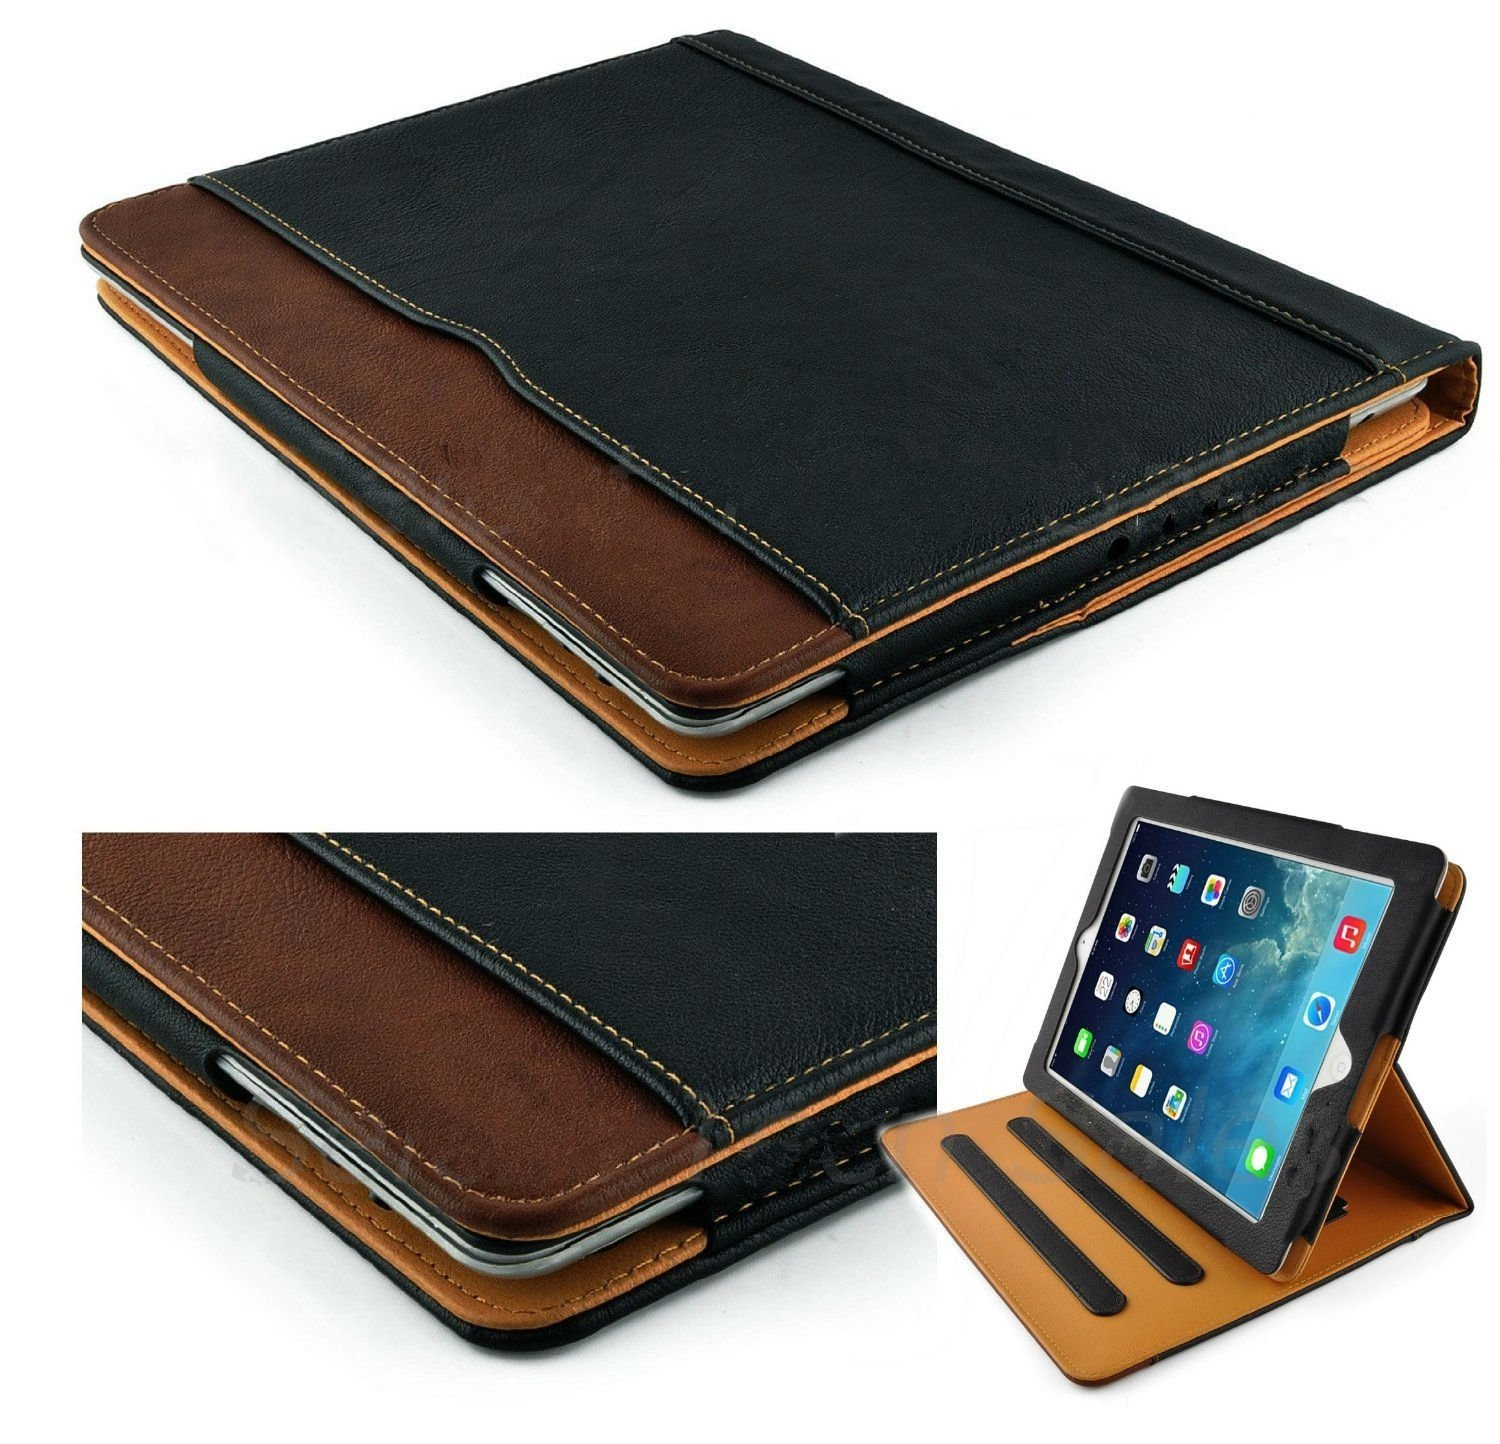 amazon com s tech new black and tan apple ipad 2 3 4 generationamazon com s tech new black and tan apple ipad 2 3 4 generation soft leather wallet smart cover with sleep wake feature flip case computers \u0026 accessories